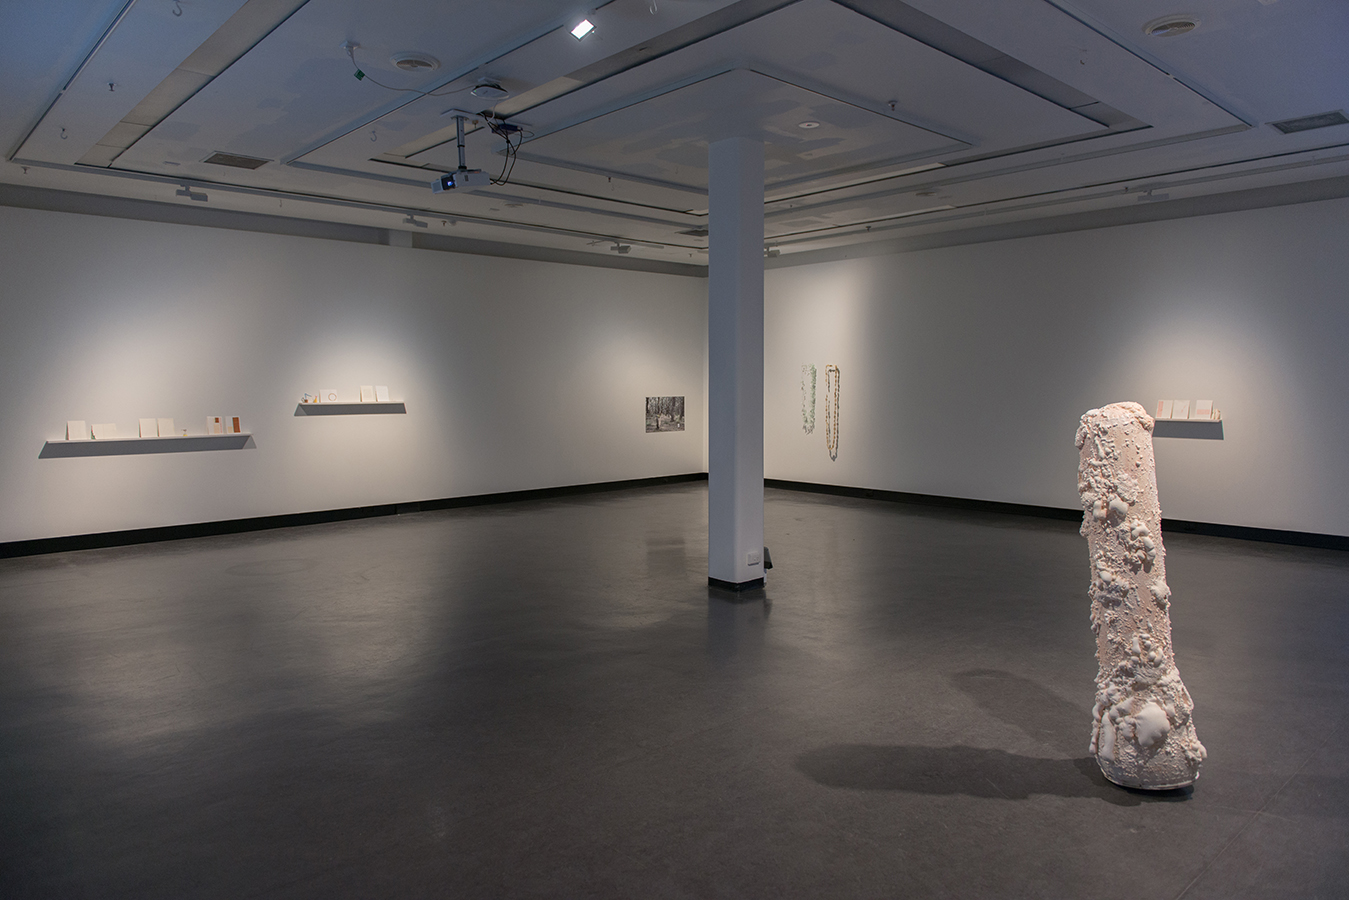 School of Art Honours Travelling Awards Exhibition, installation view